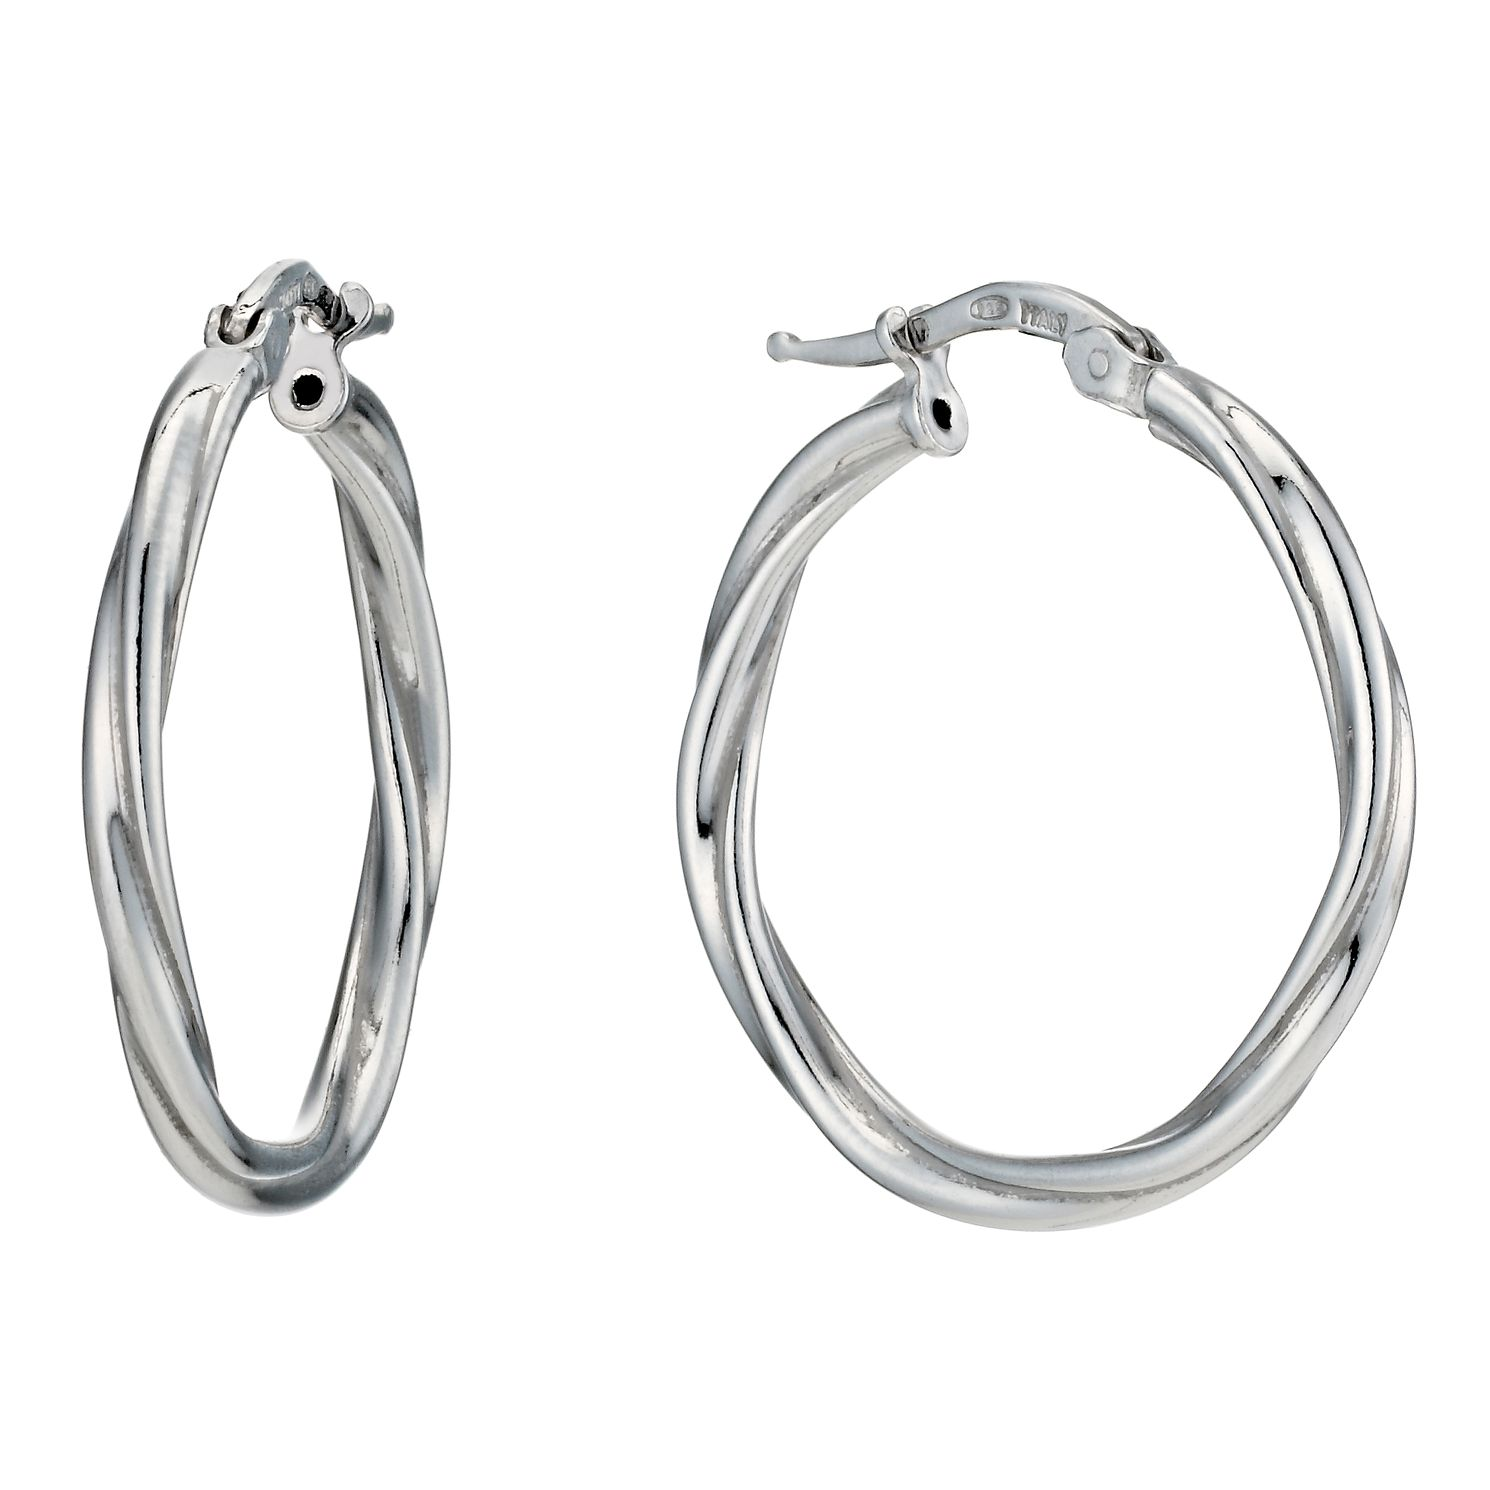 Silver Rhodium Plated Round Twist 20mm Hoop Earrings - Product number 1234080